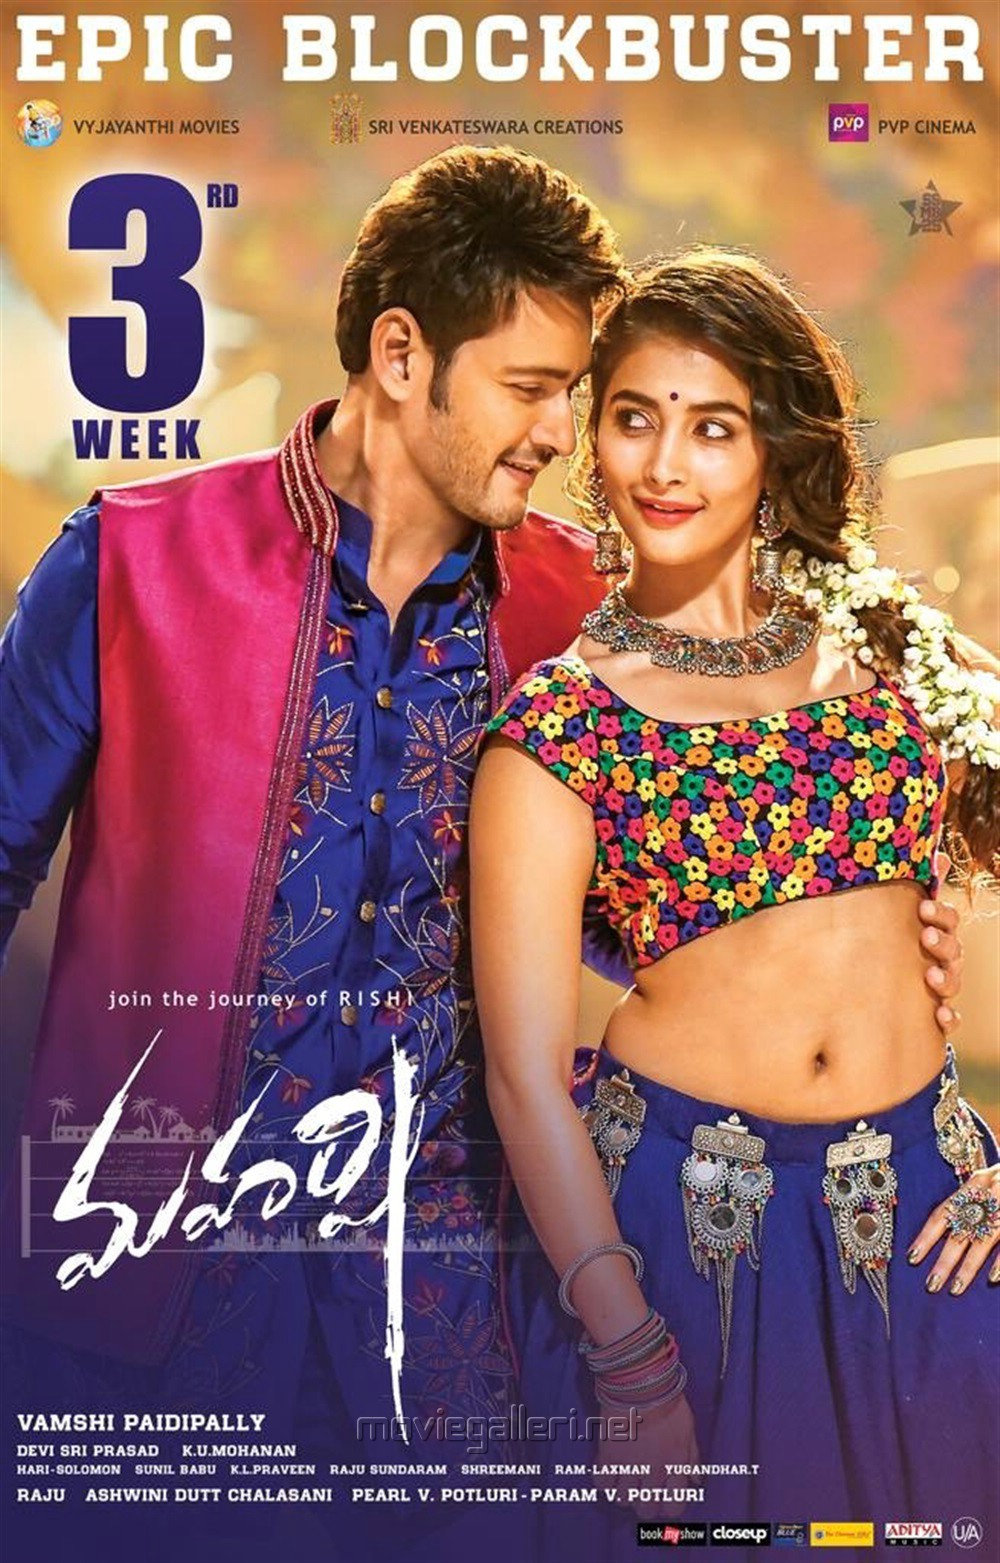 Mahesh Babu Pooja Hegde Maharshi Movie 3rd Week Posters